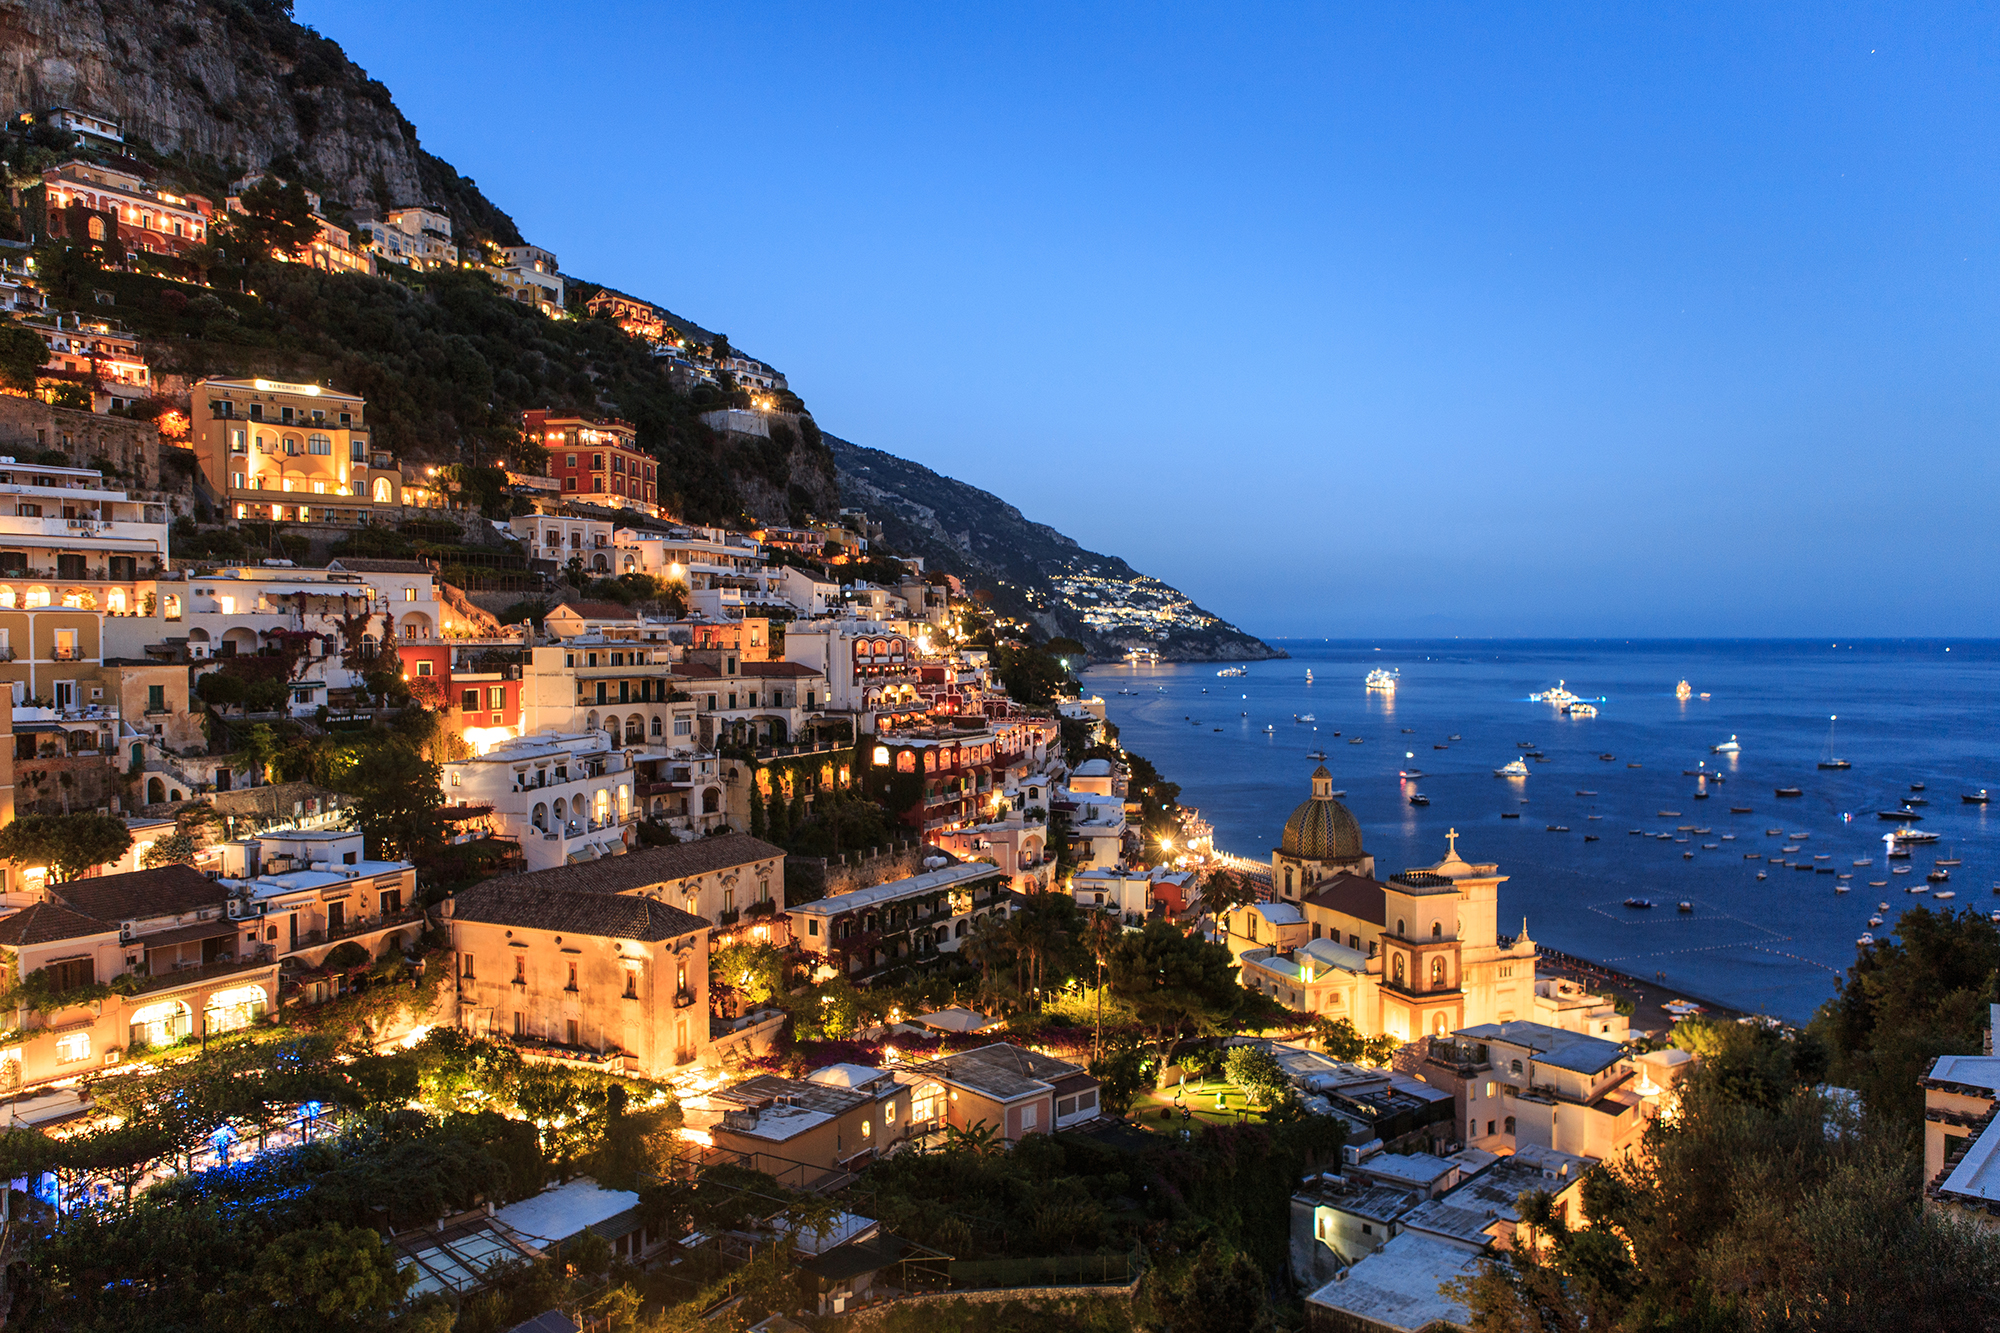 Positano at Night, Italy